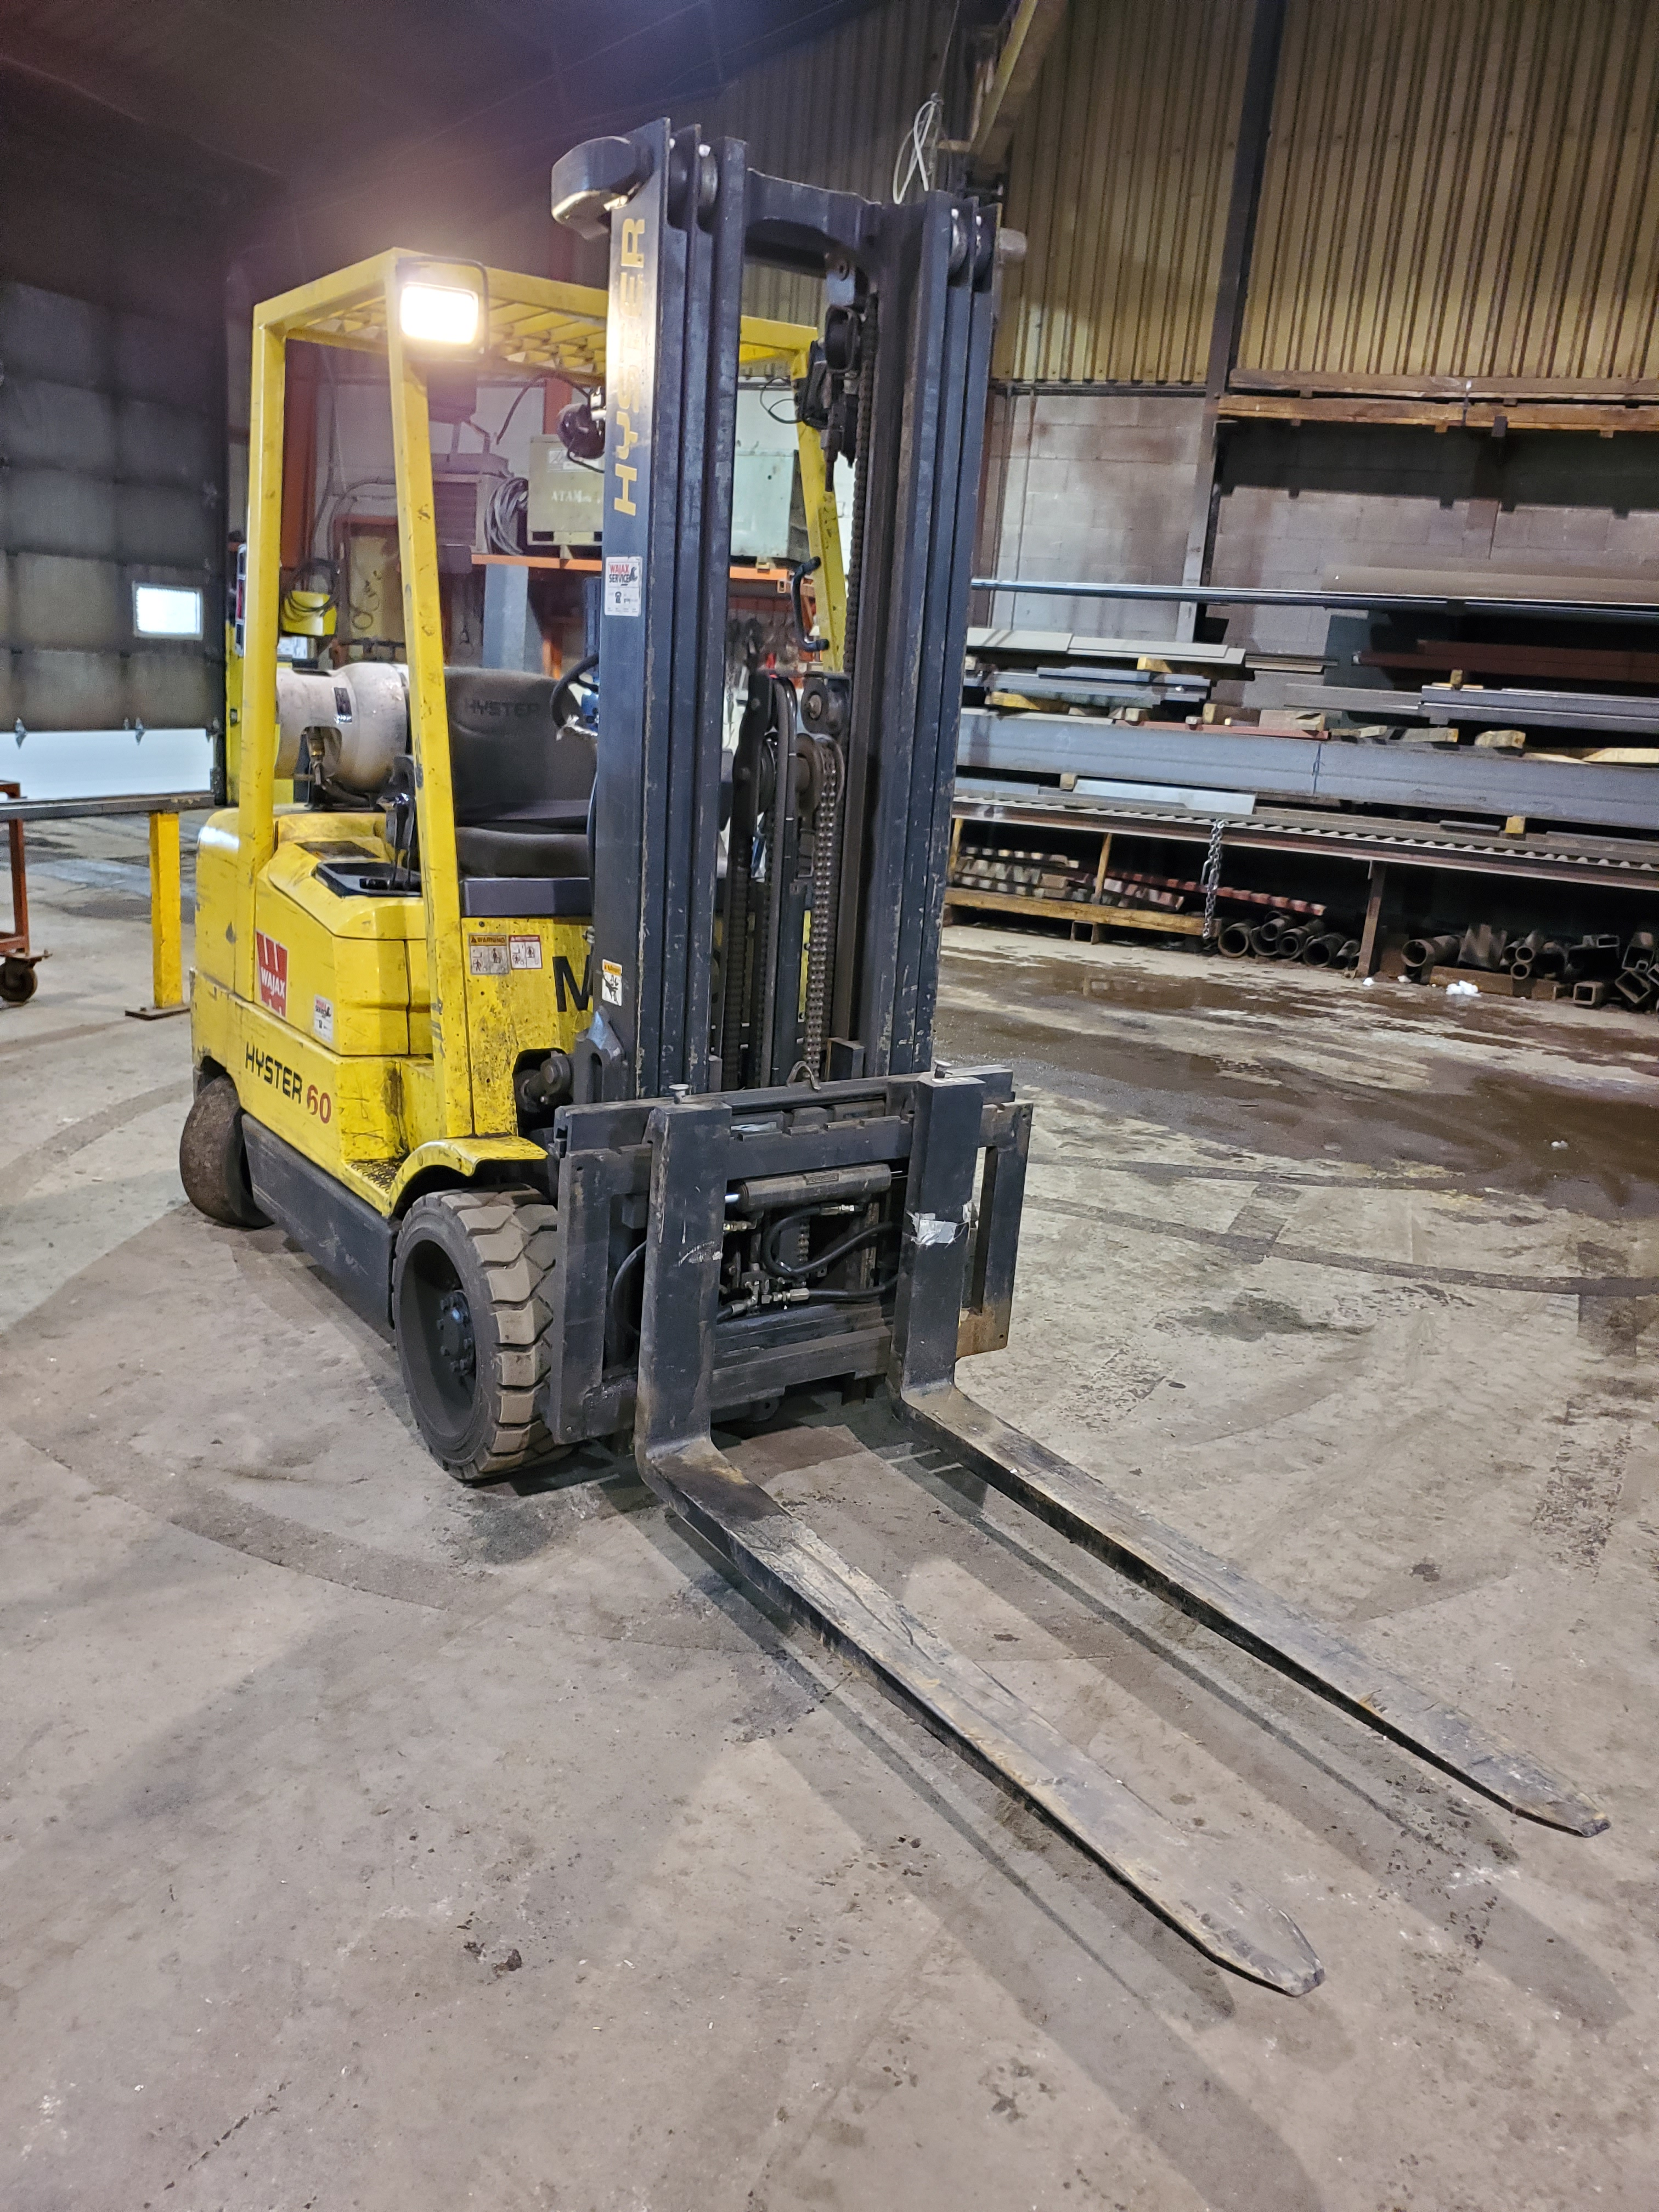 HYSTER PROPANE FORKLIFT, S60XM 6000LB CAPACITY, TRIPLE MAST, SIDE SHIFT- LOCATION - LACHINE, QUEBEC - Image 5 of 6